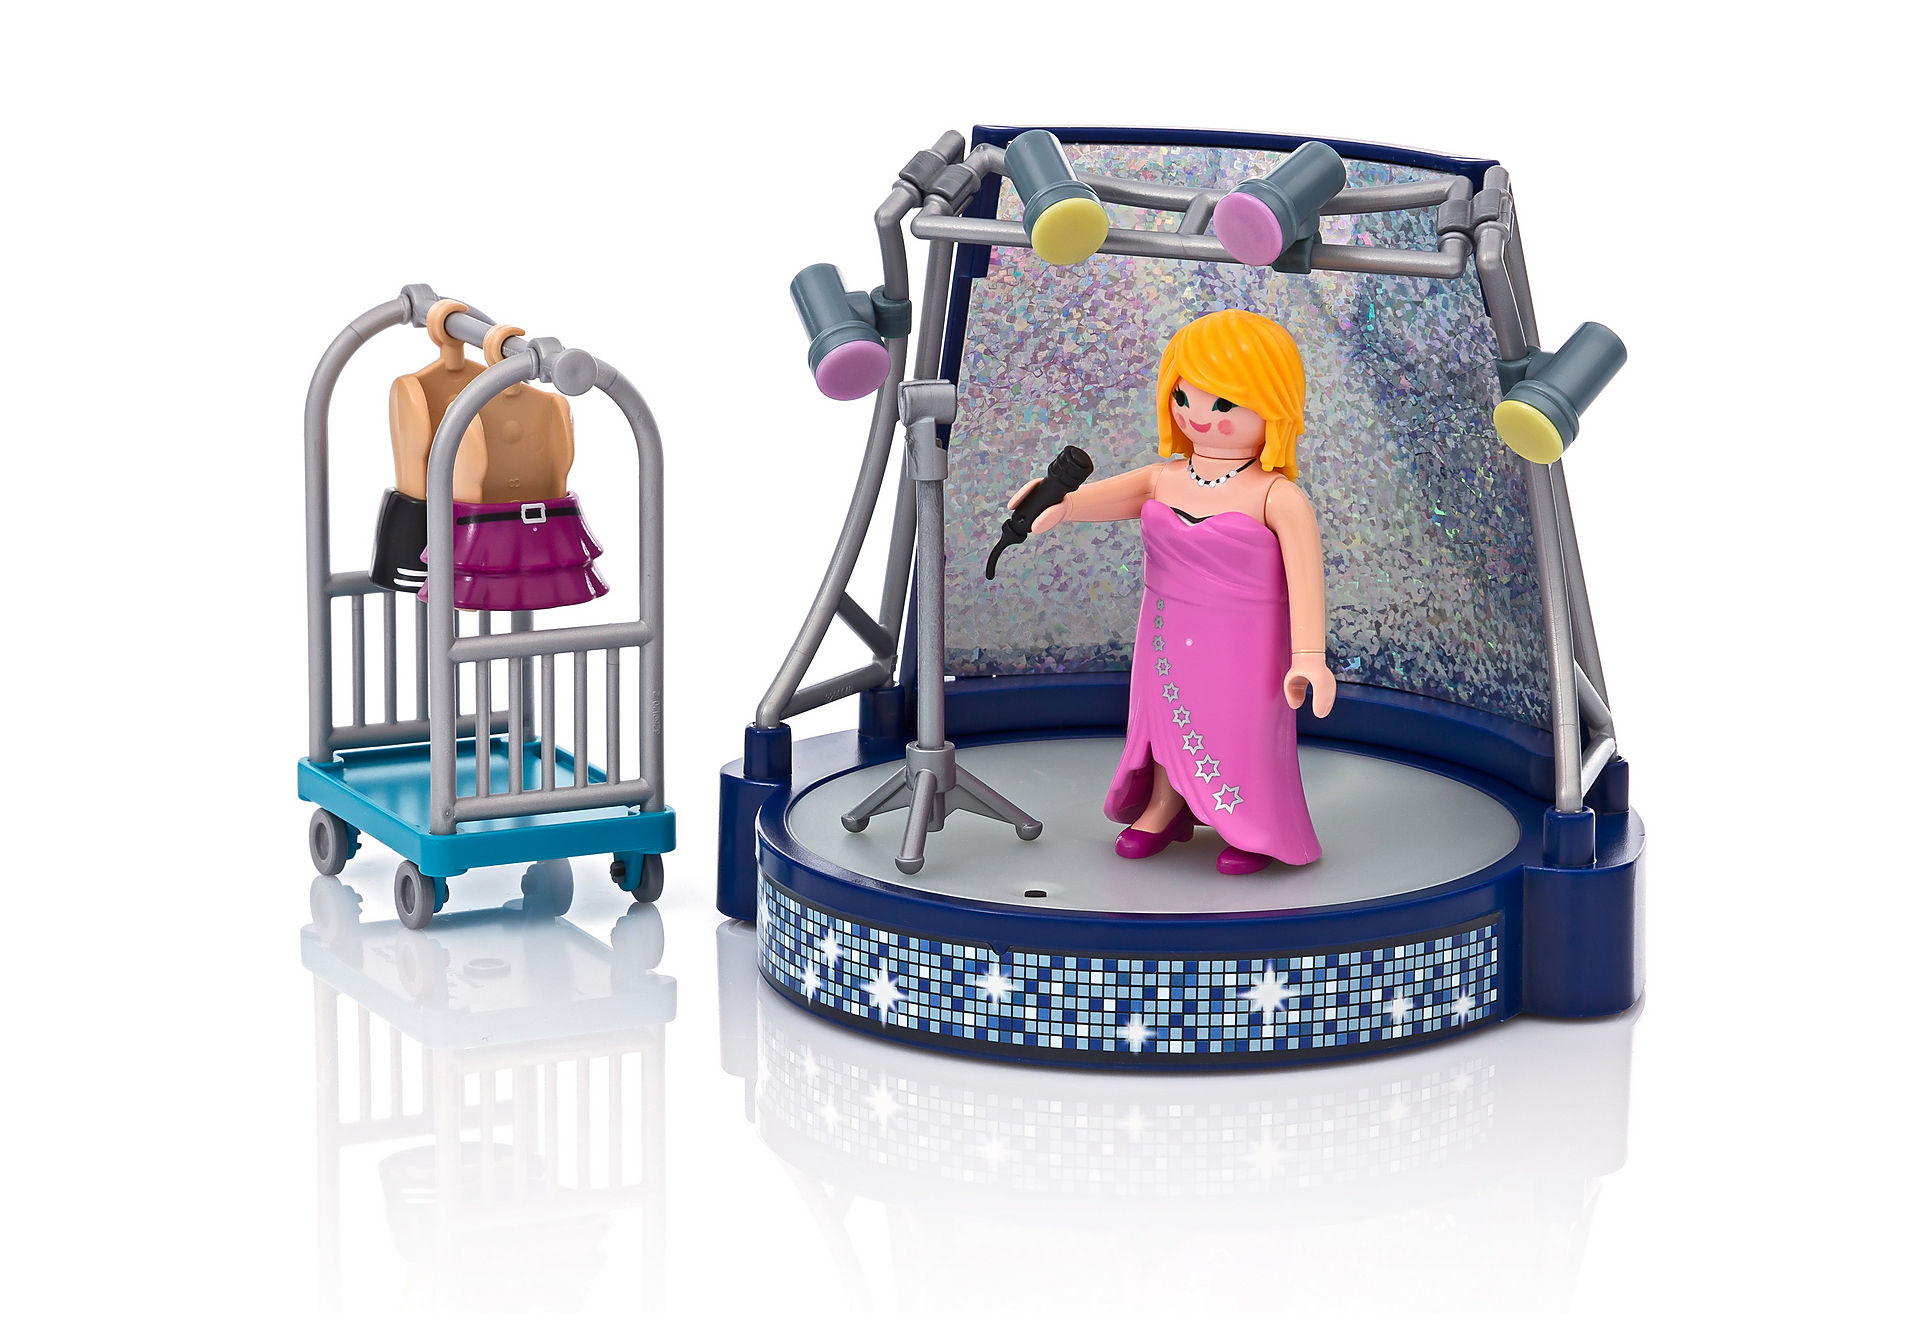 360degree image 4